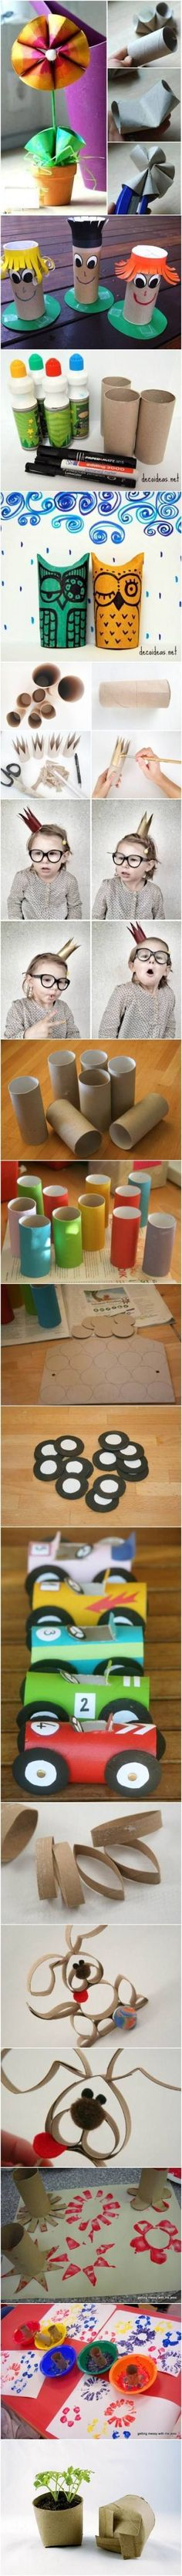 fun ways to use toilet paper tube